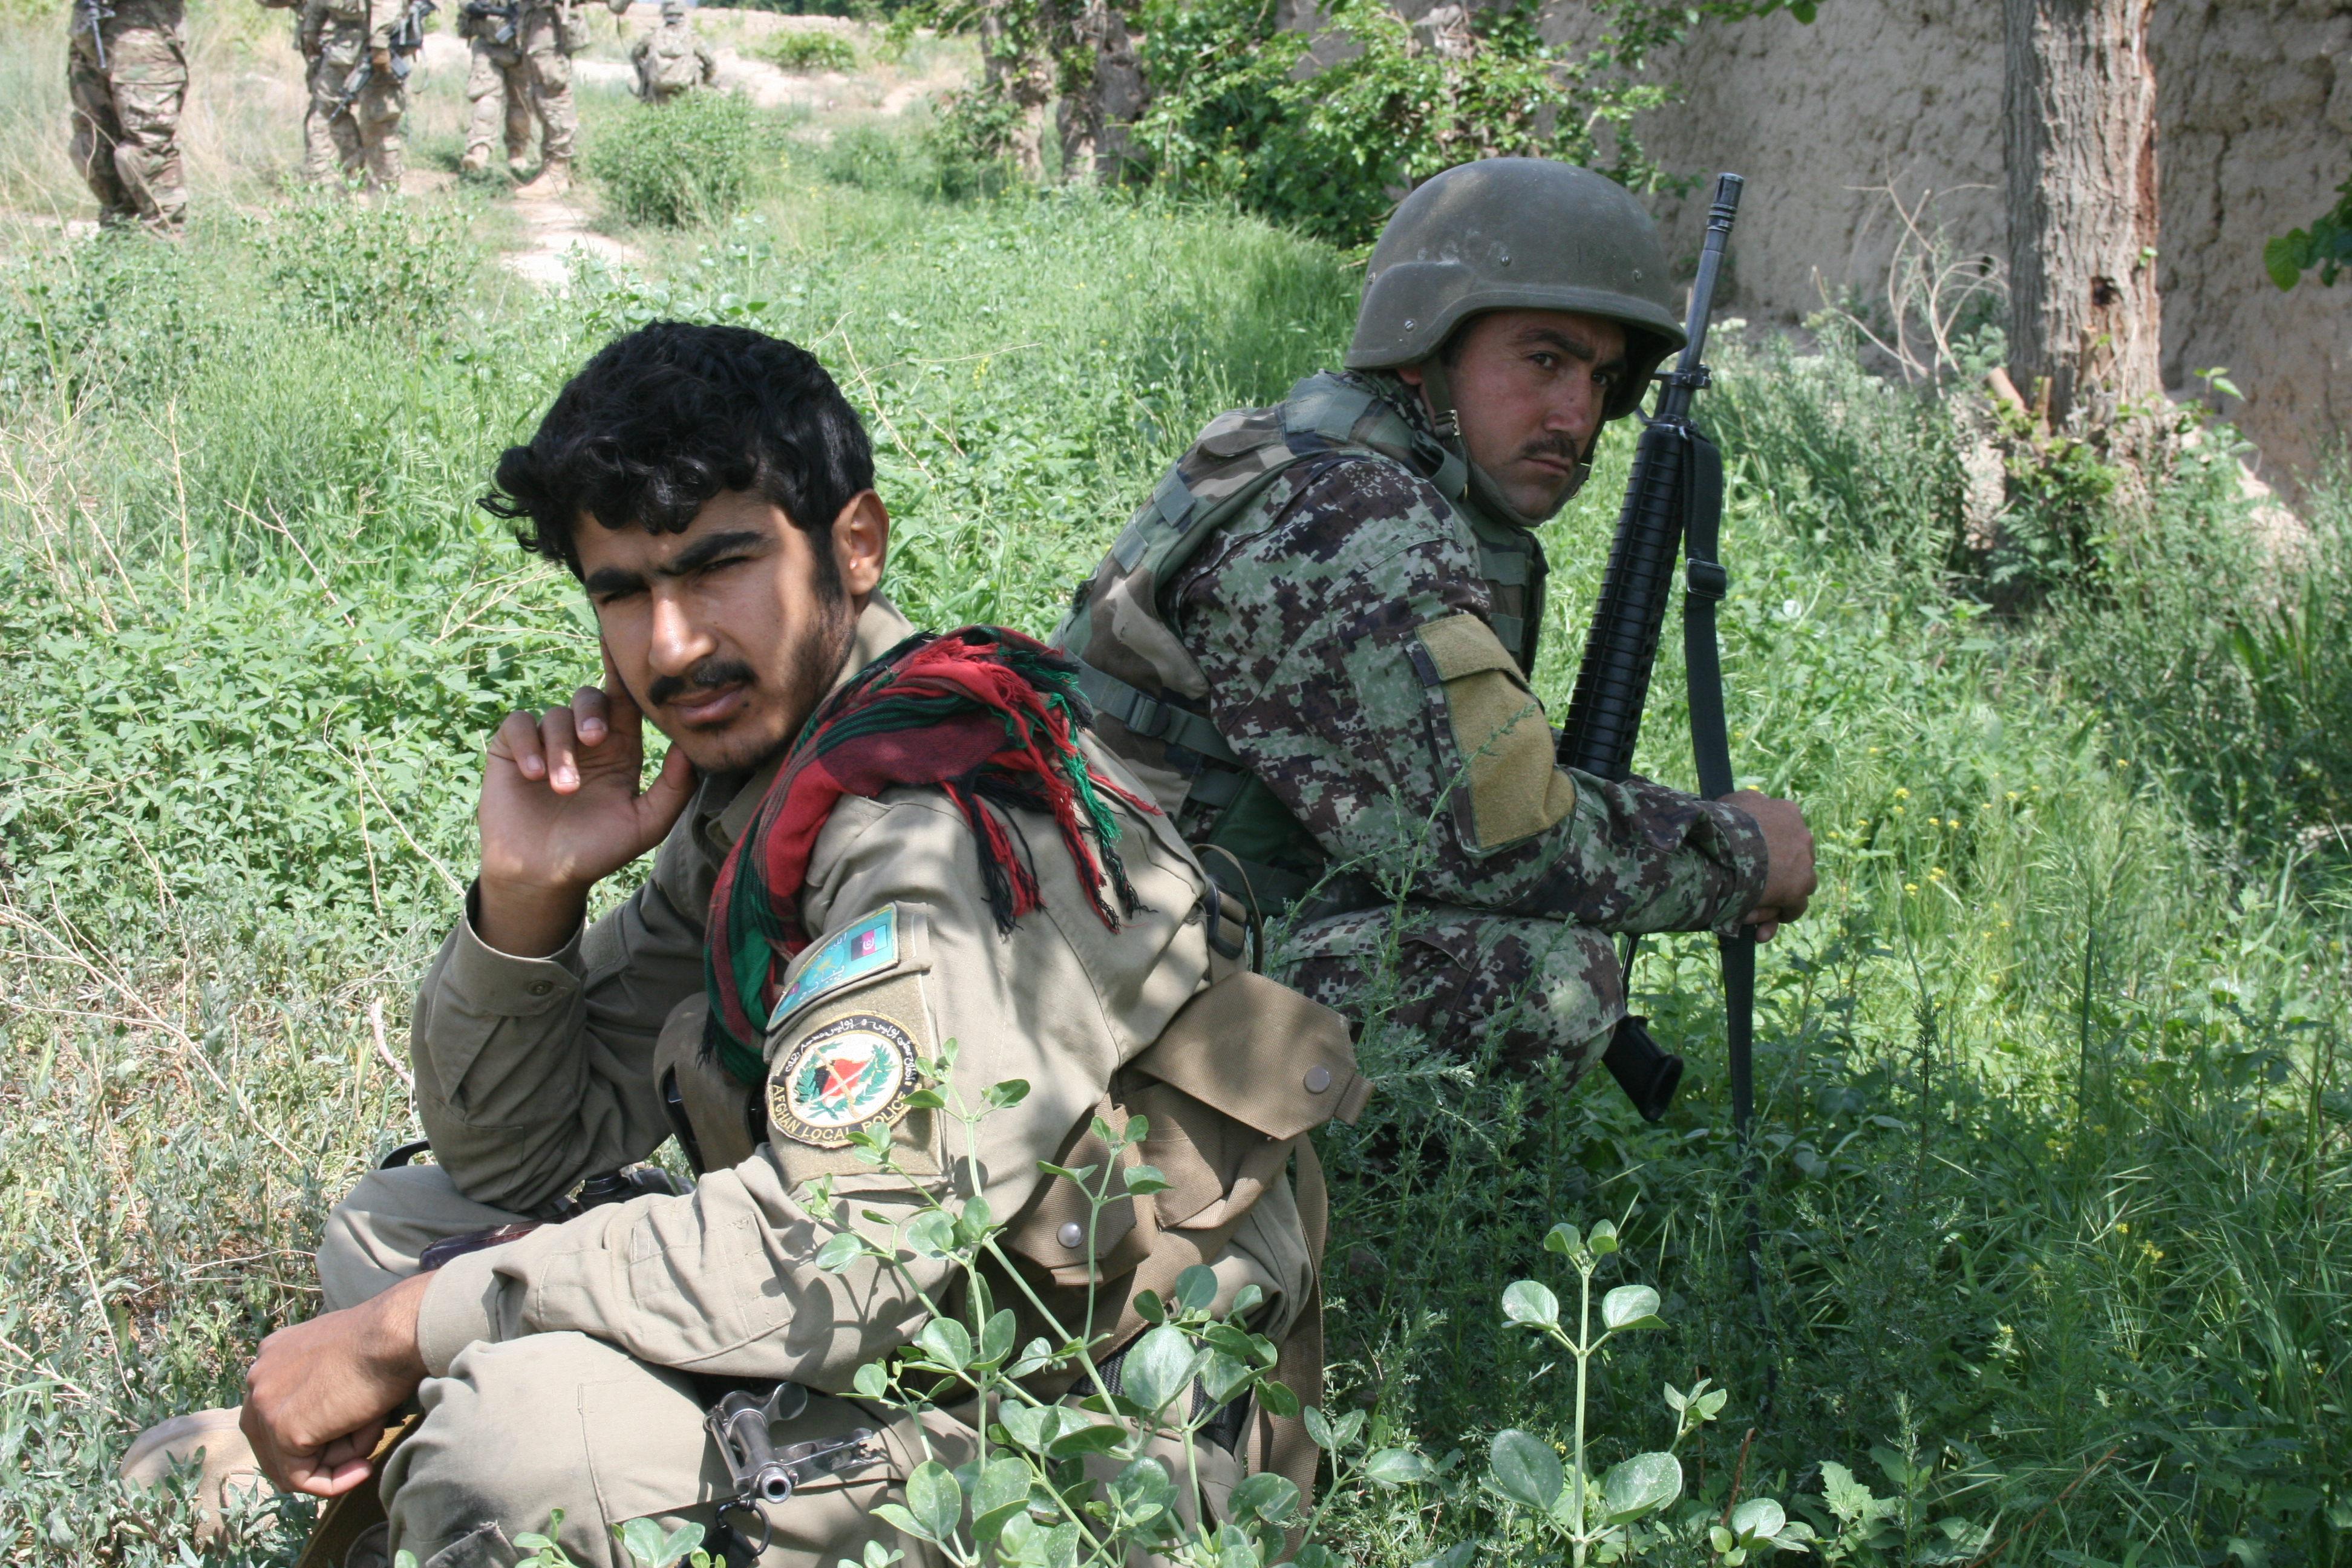 Afghan army troops in Zari in April 2013. <em>Photo: David Axe</em>